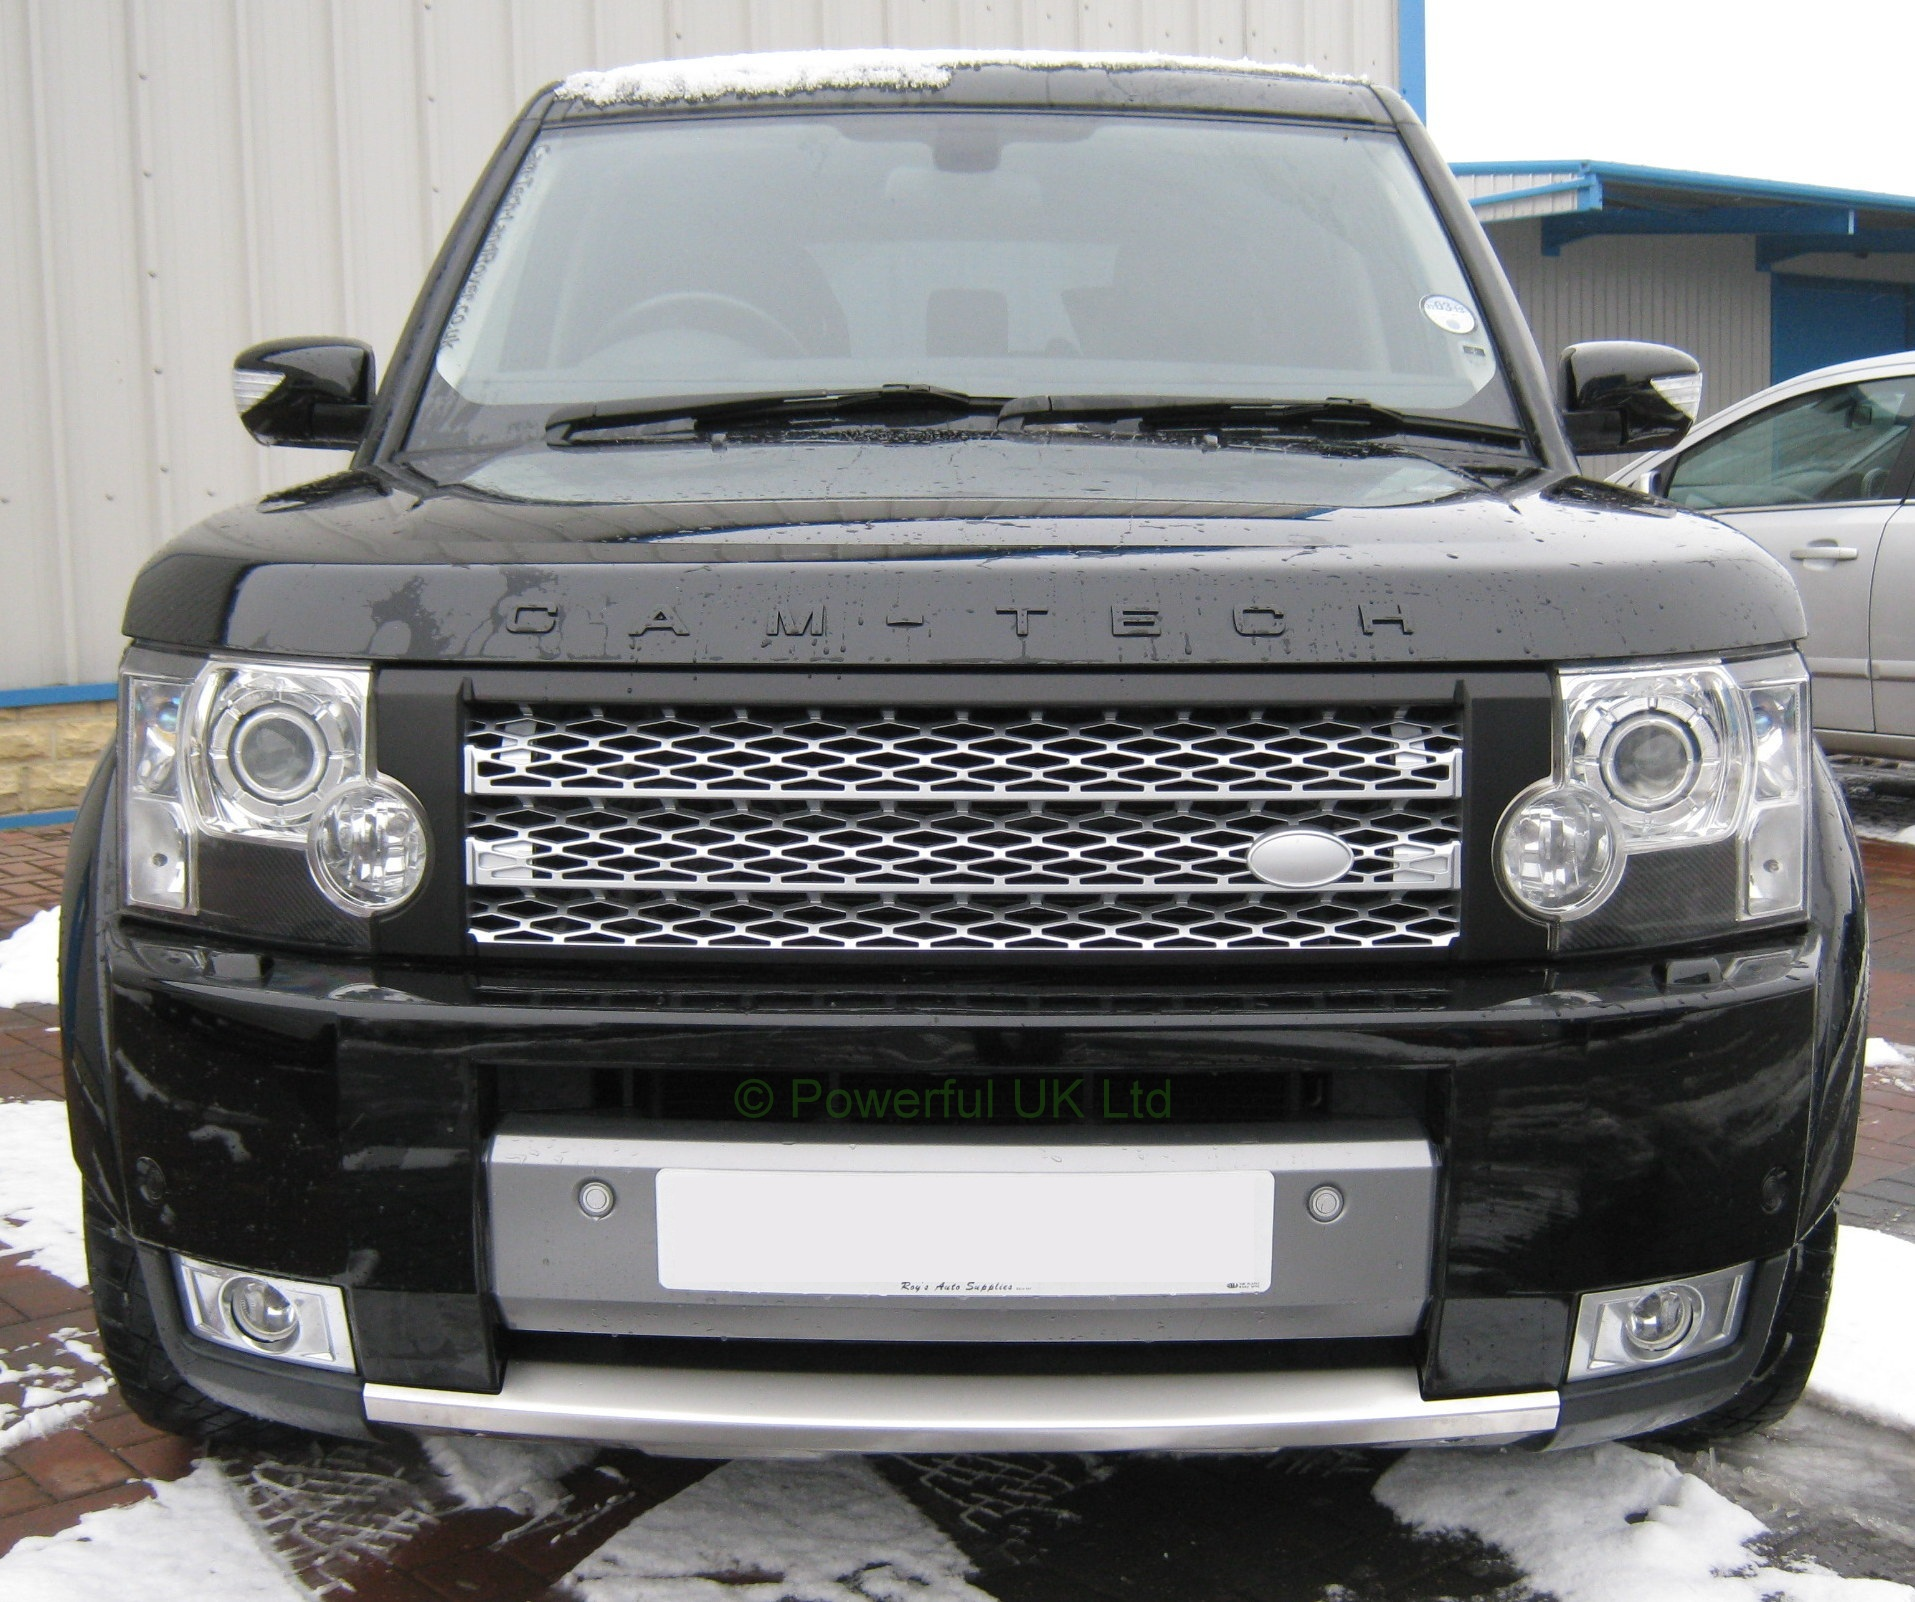 Sold Land Rover Discovery 3 Discov: Satin Black+silver Front Grille For Land Rover Discovery 3